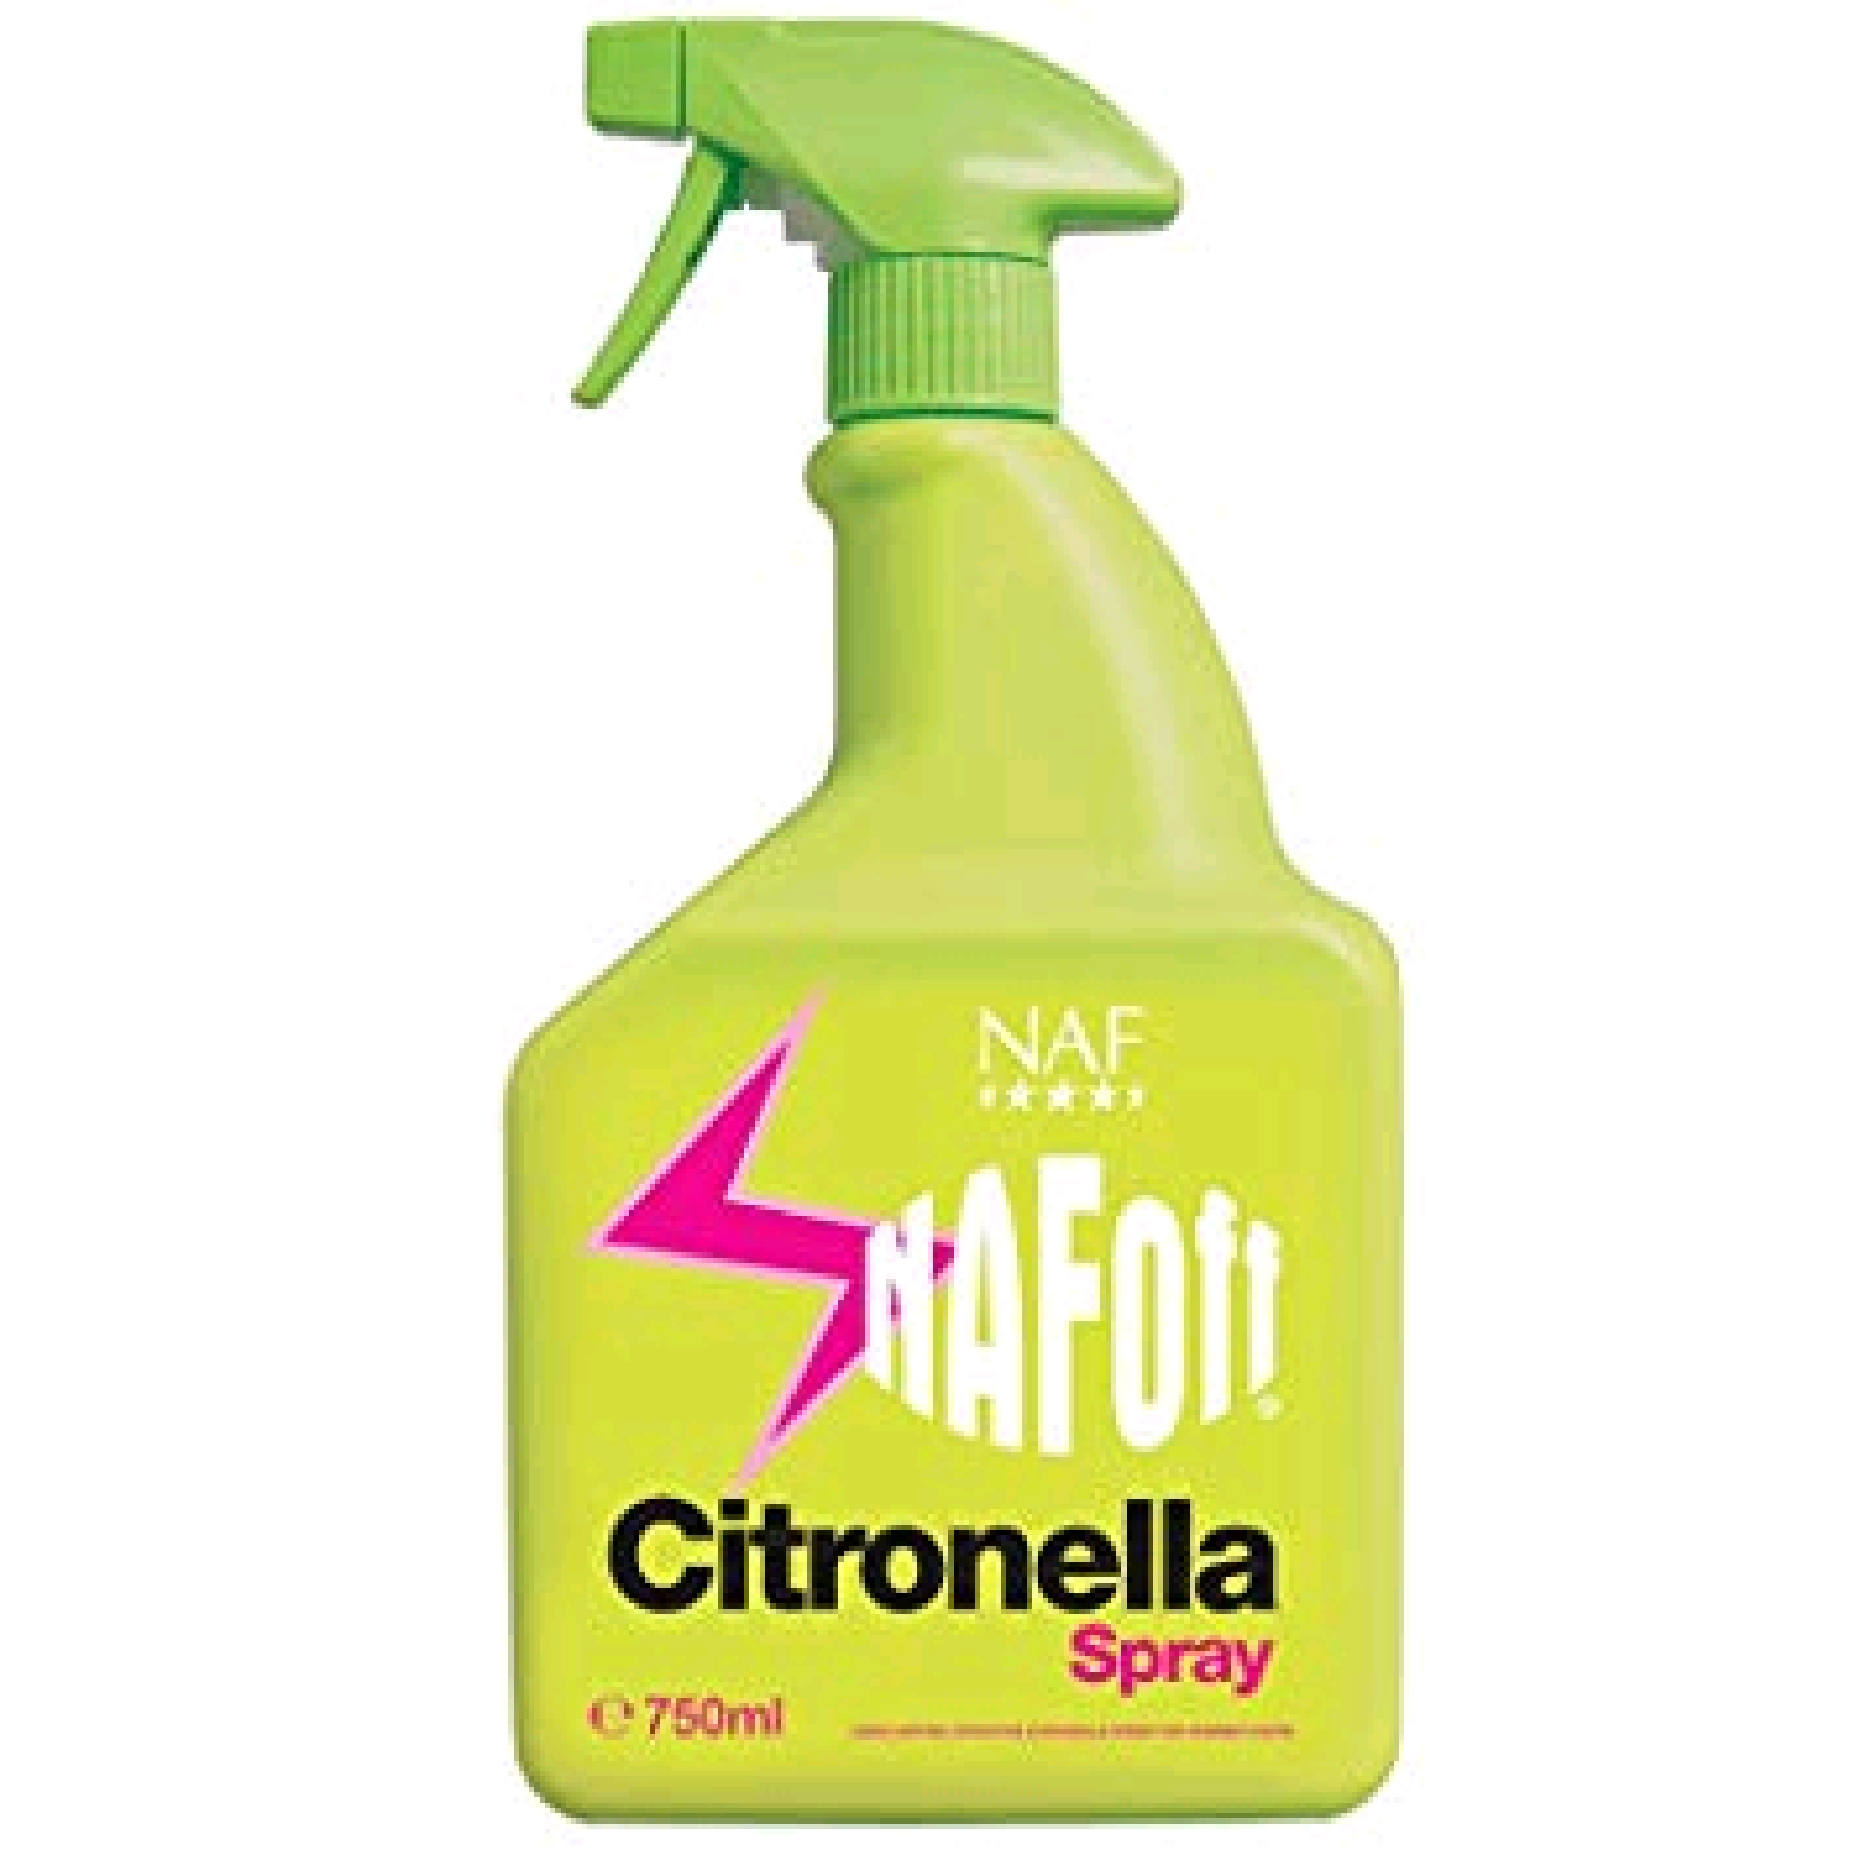 NAF Citronella Spray